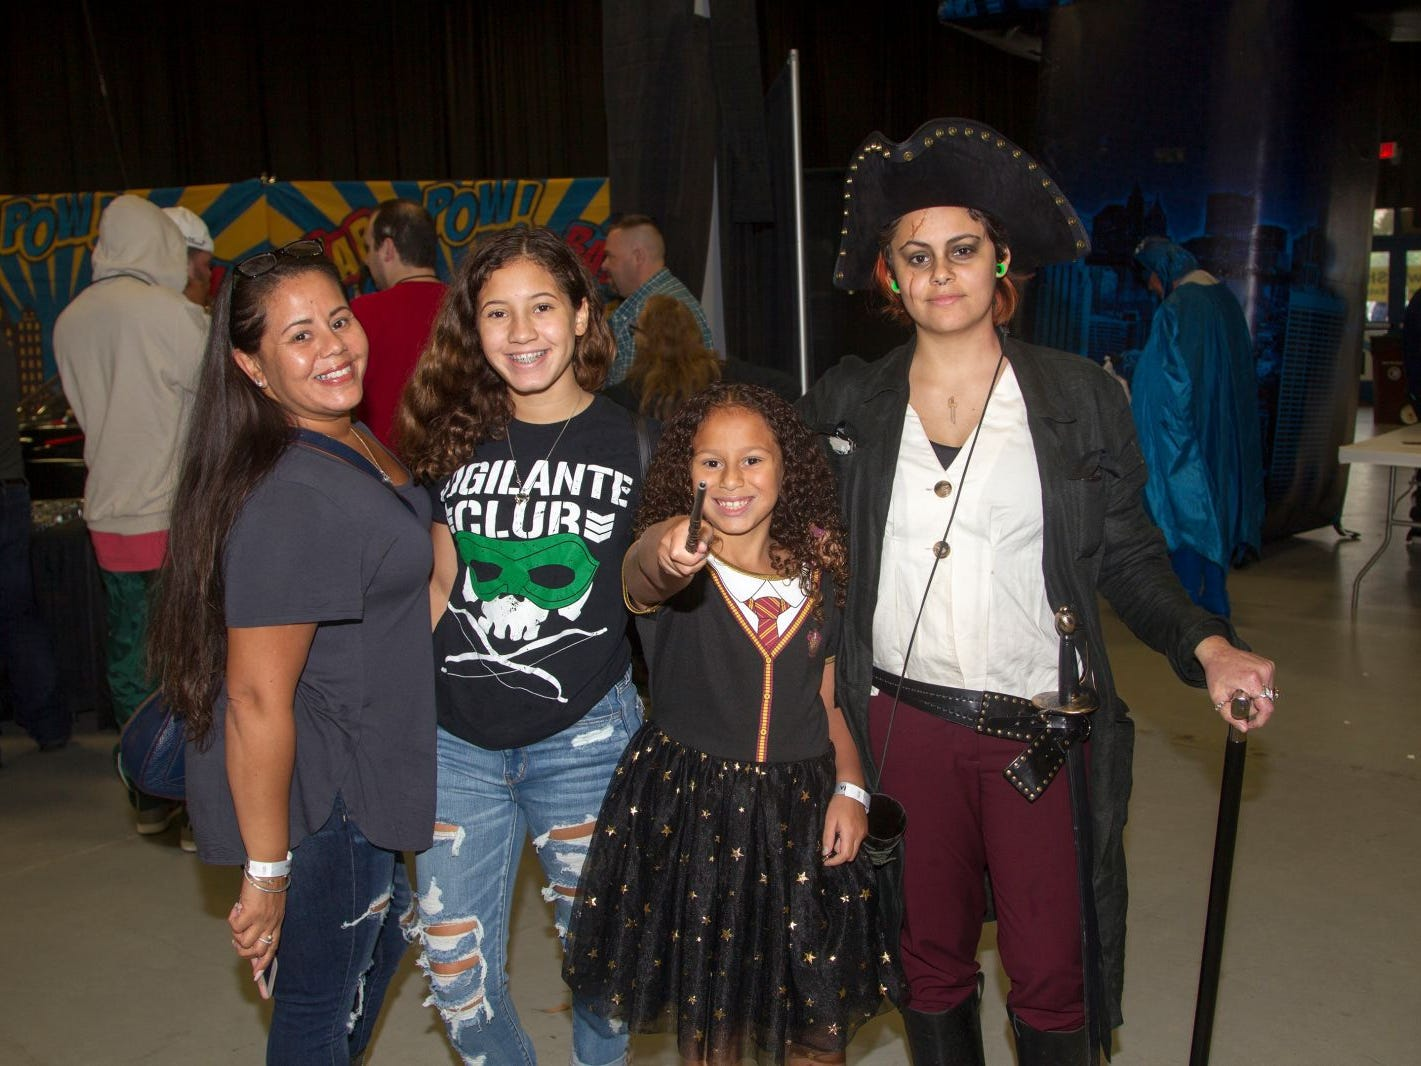 Joanna, Gabriella, Samantha, Emily. The 2018 Heroes and Villains Fan Fest took place at the New Jersey Convention & Expo Center. 09/09/2018